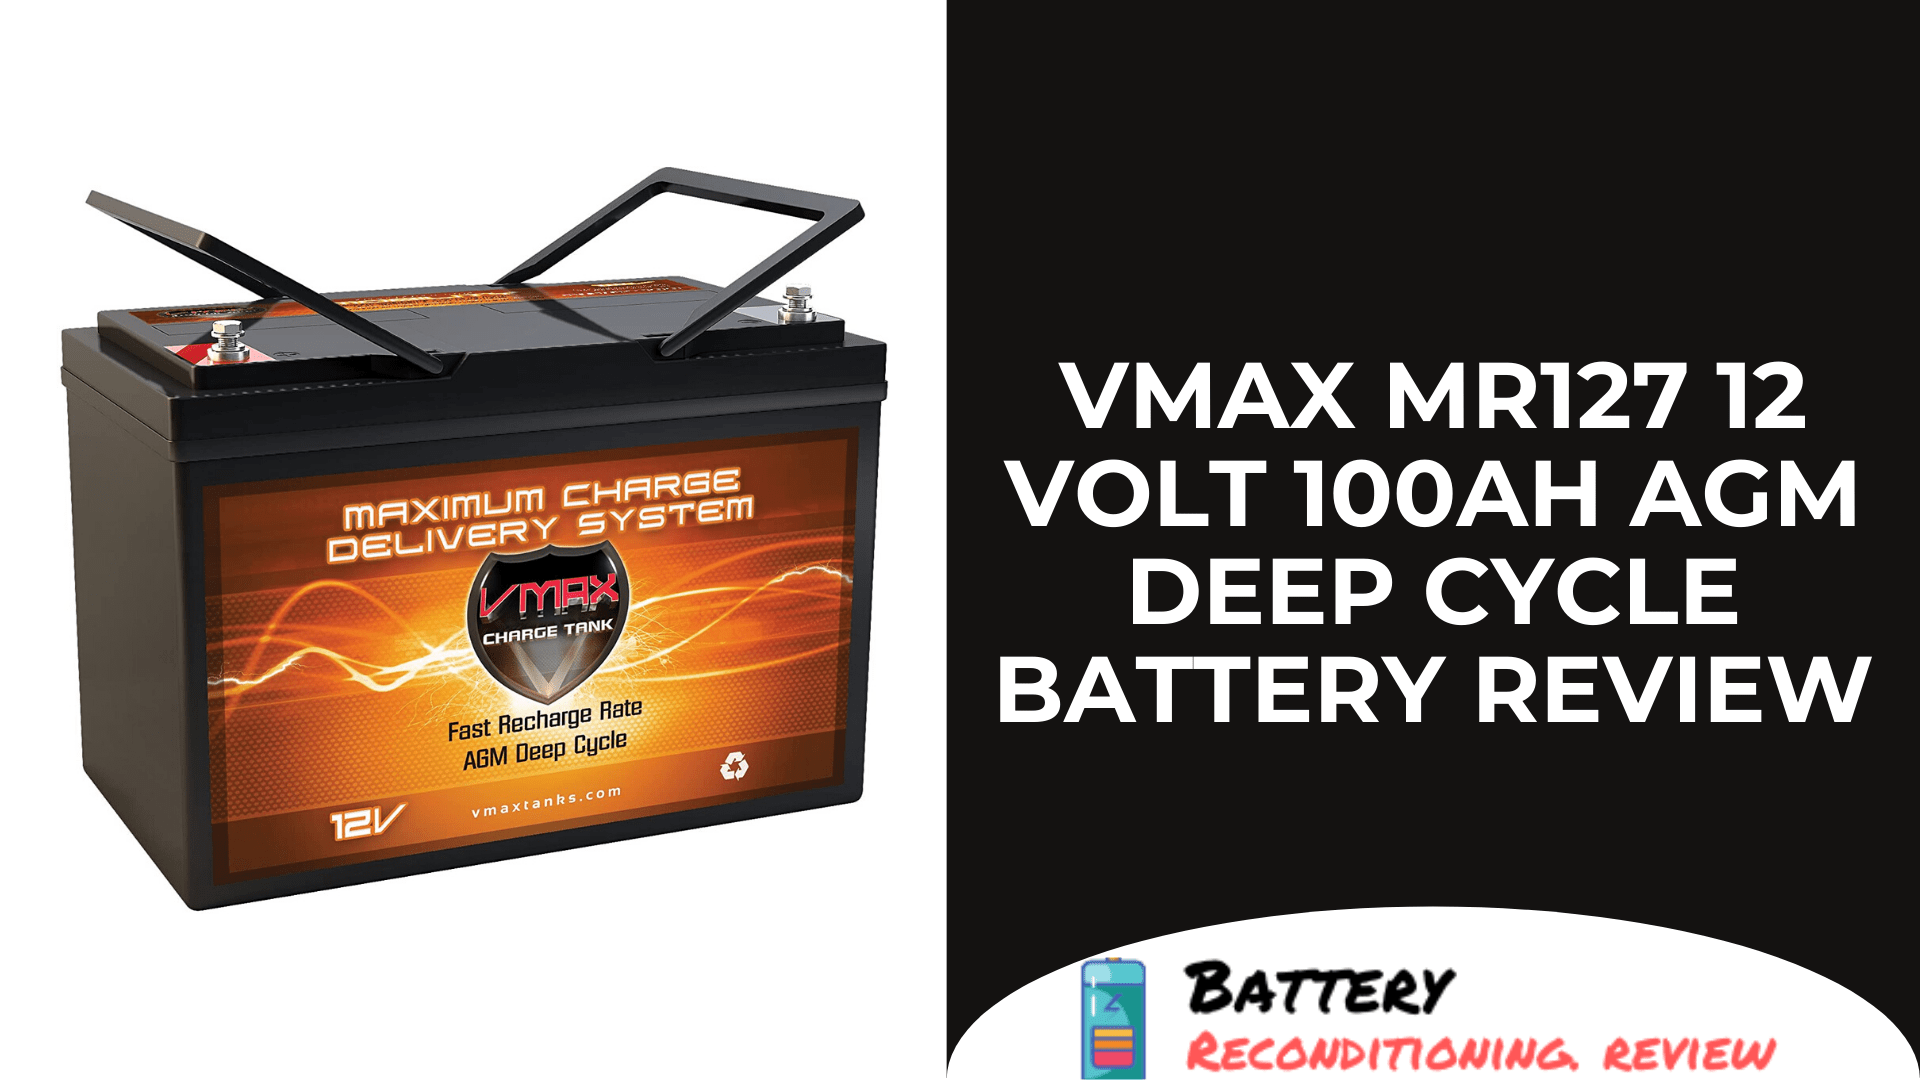 VMAX MR127 12 Volt 100Ah AGM Deep Cycle Battery Review